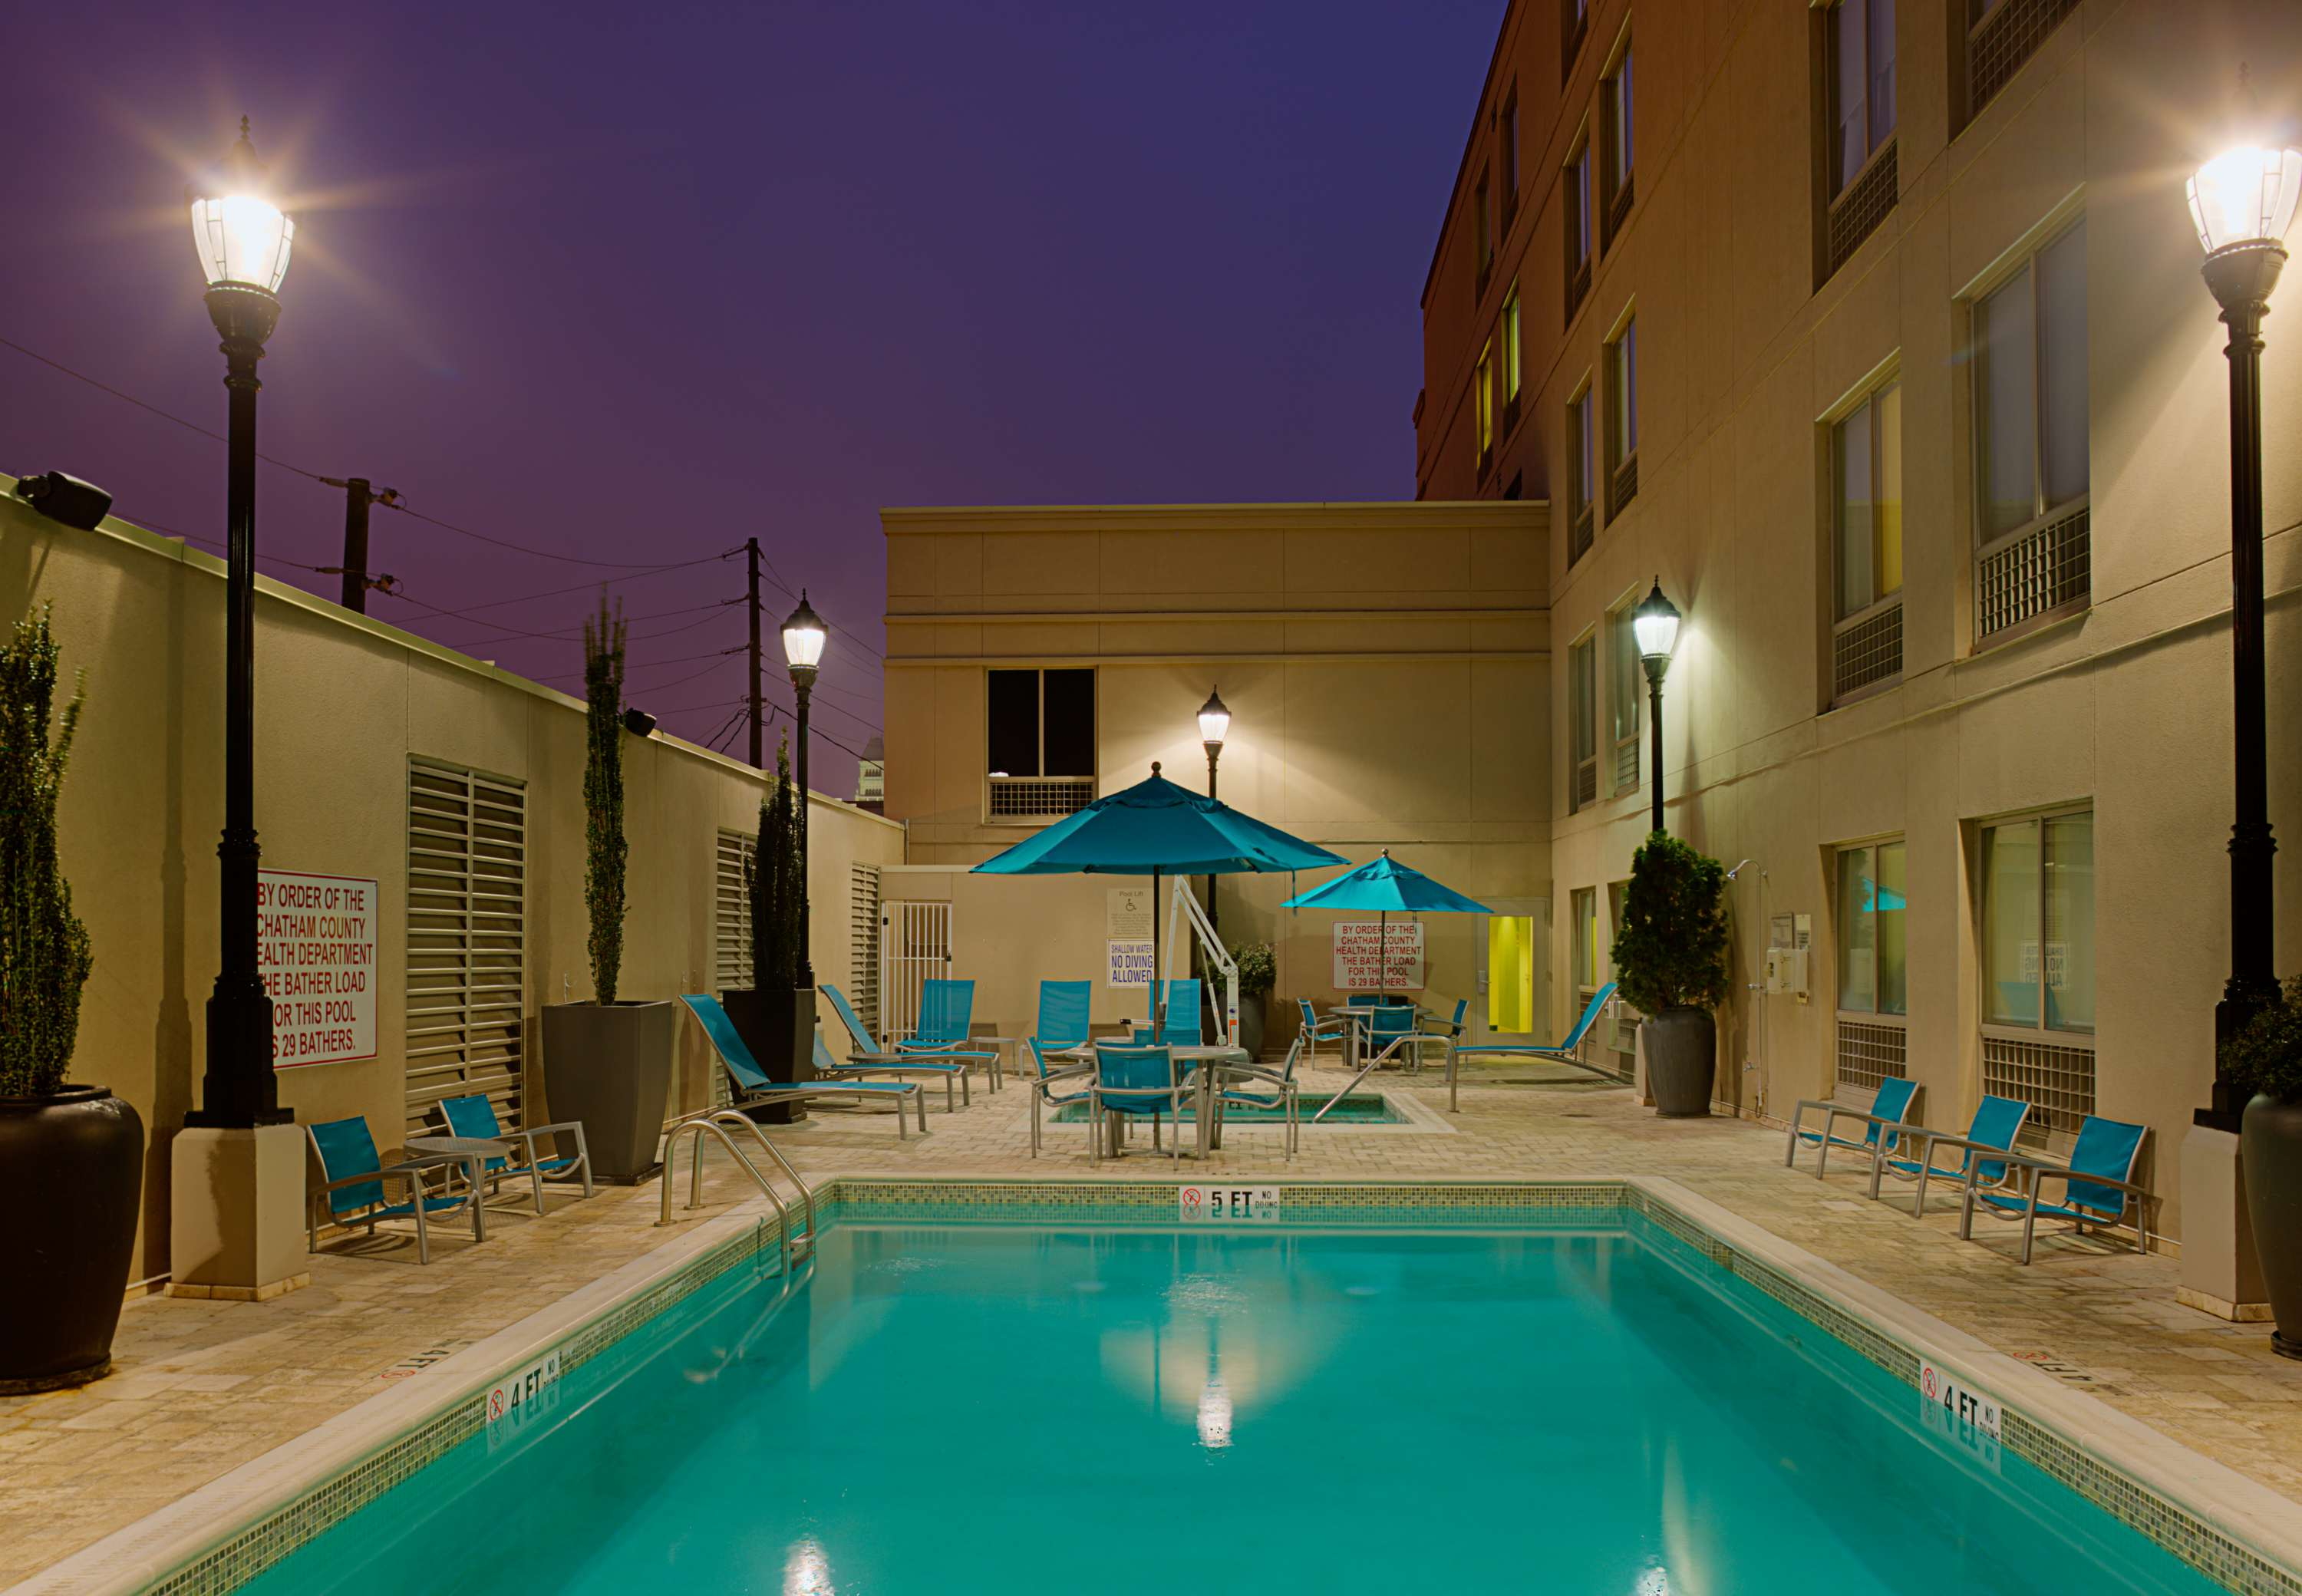 SpringHill Suites by Marriott Savannah Downtown/Historic District image 6